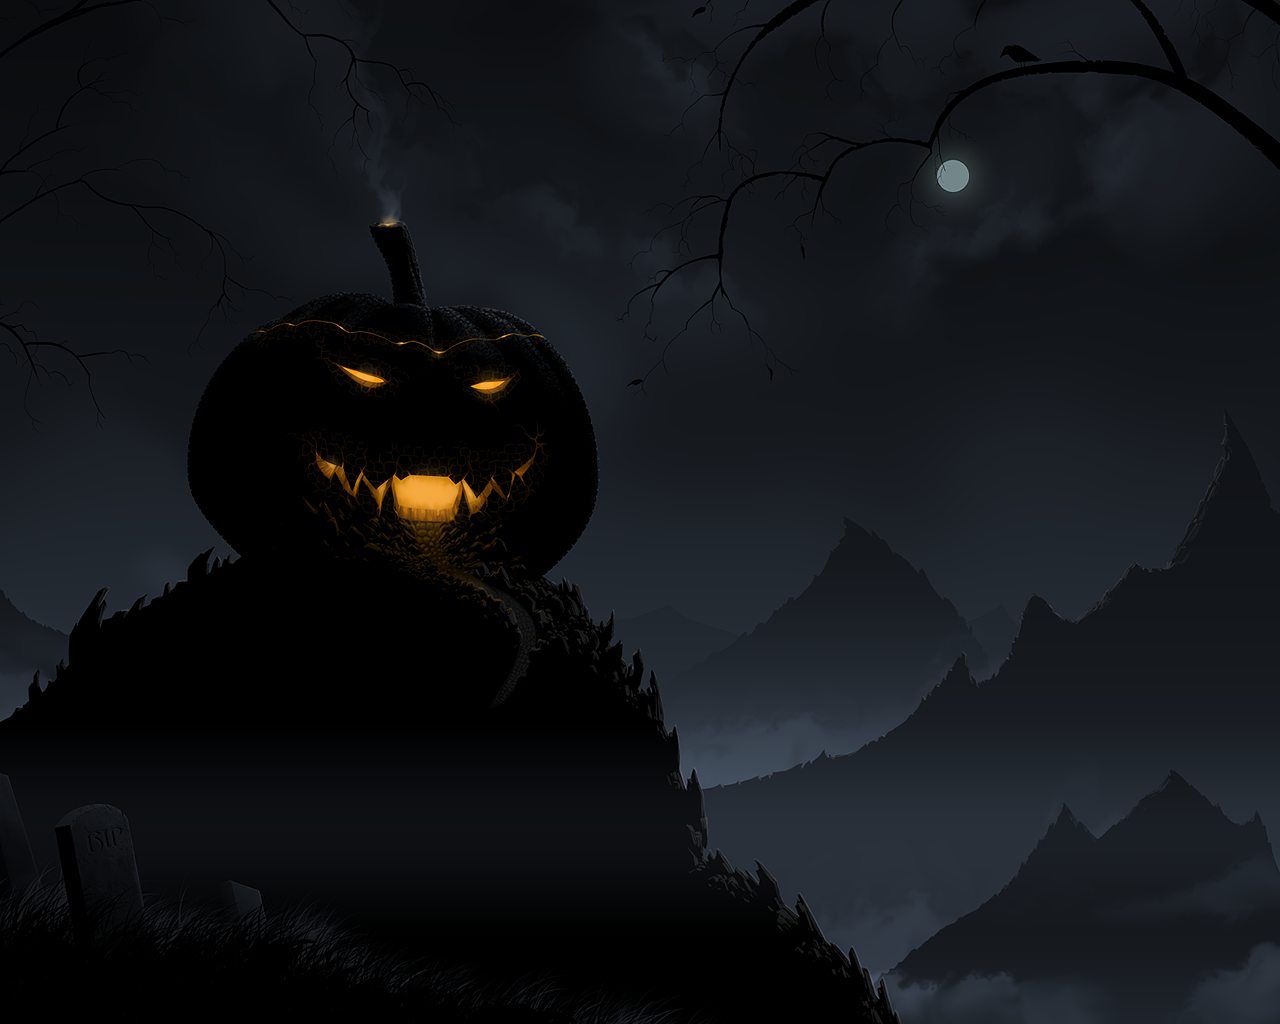 Scary Halloween 2012 HD Wallpapers Pumpkins Witches Spider Web 1280x1024